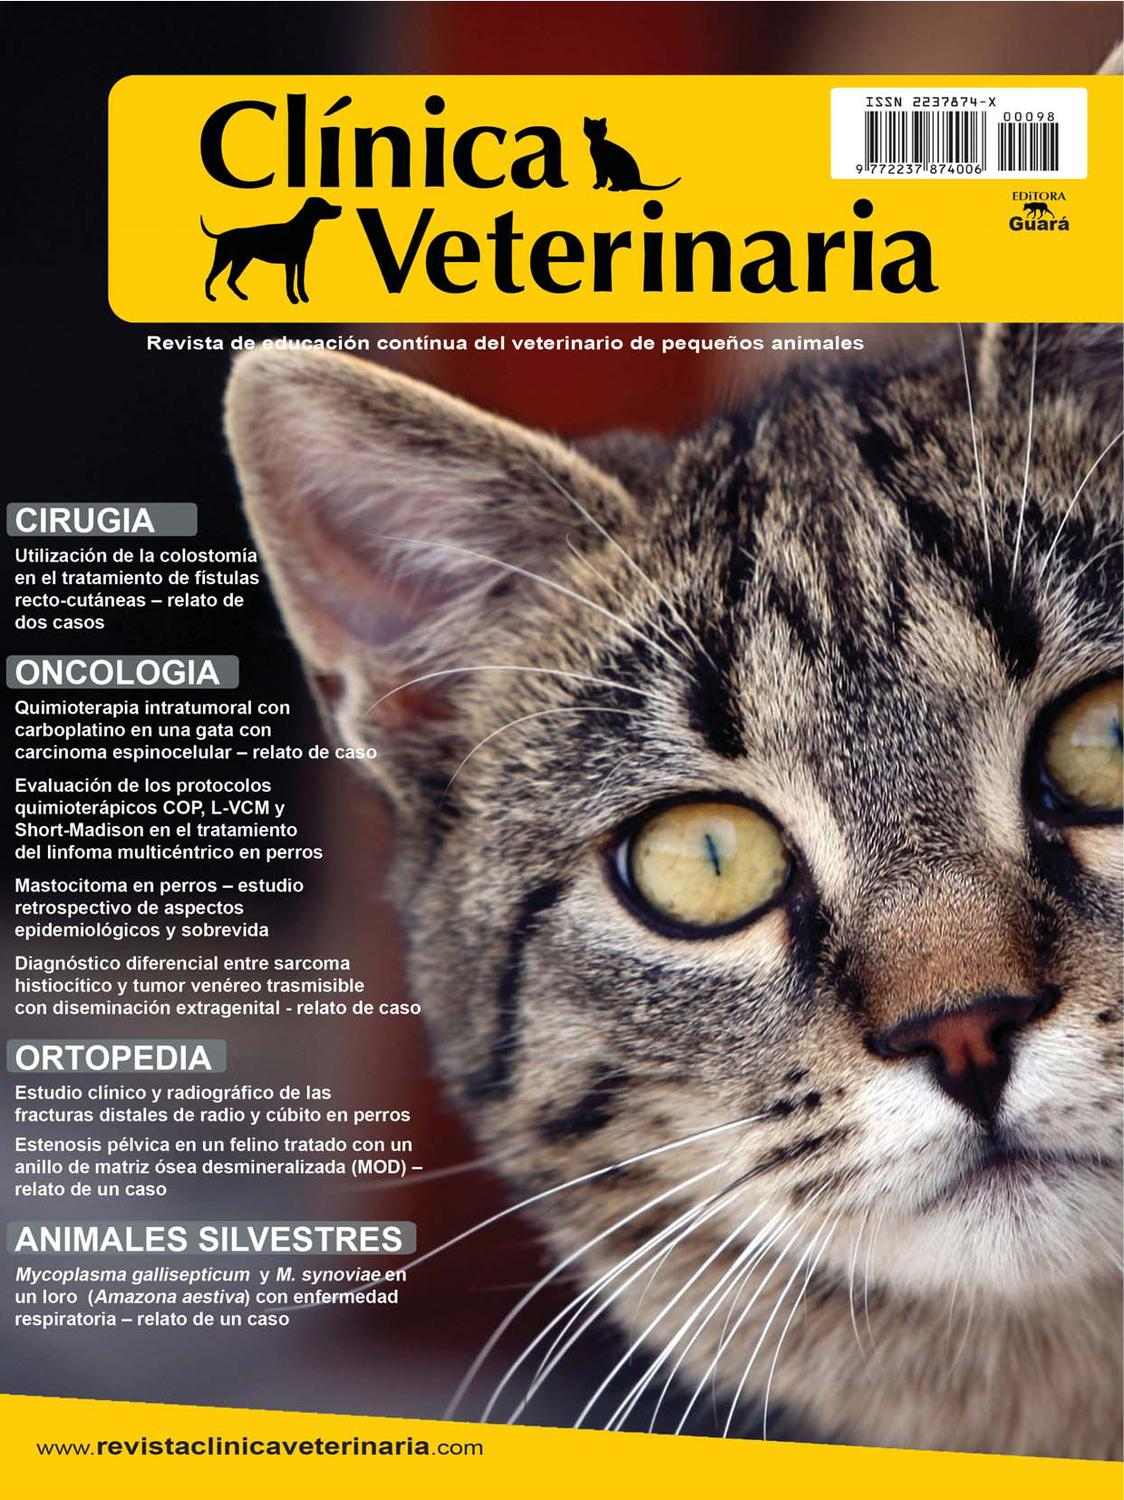 Clínica Veterinaria n. 98 by Revista Clínica Veterinária - issuu